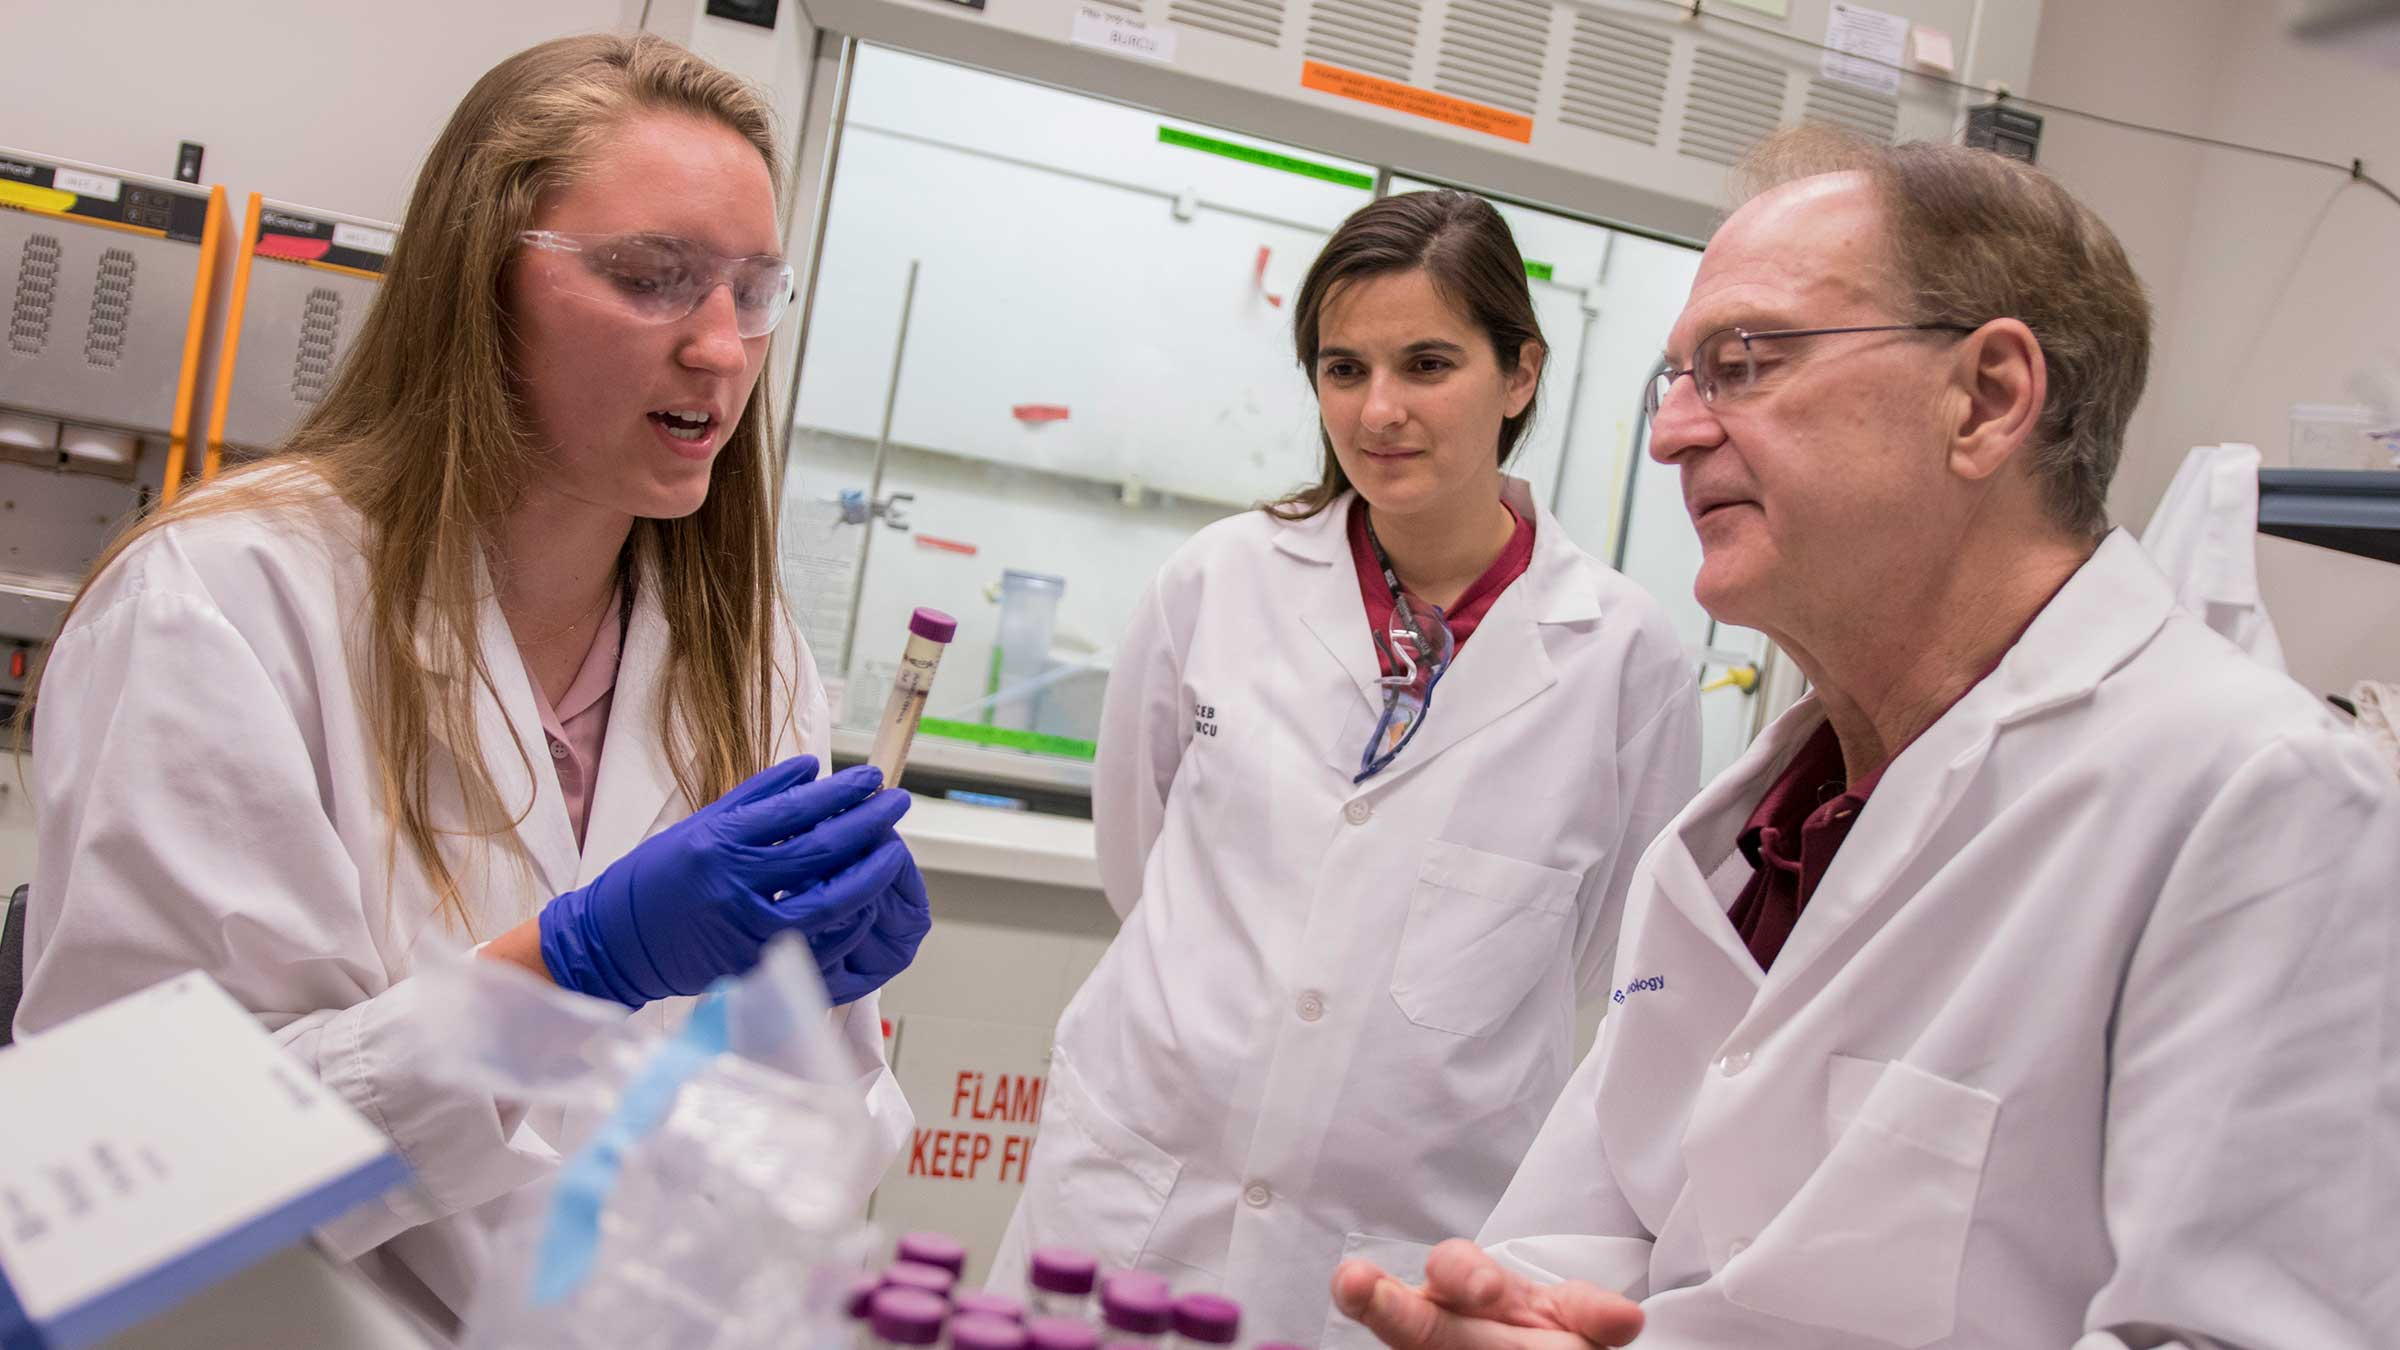 Two young women researchers work in a lab with a professor